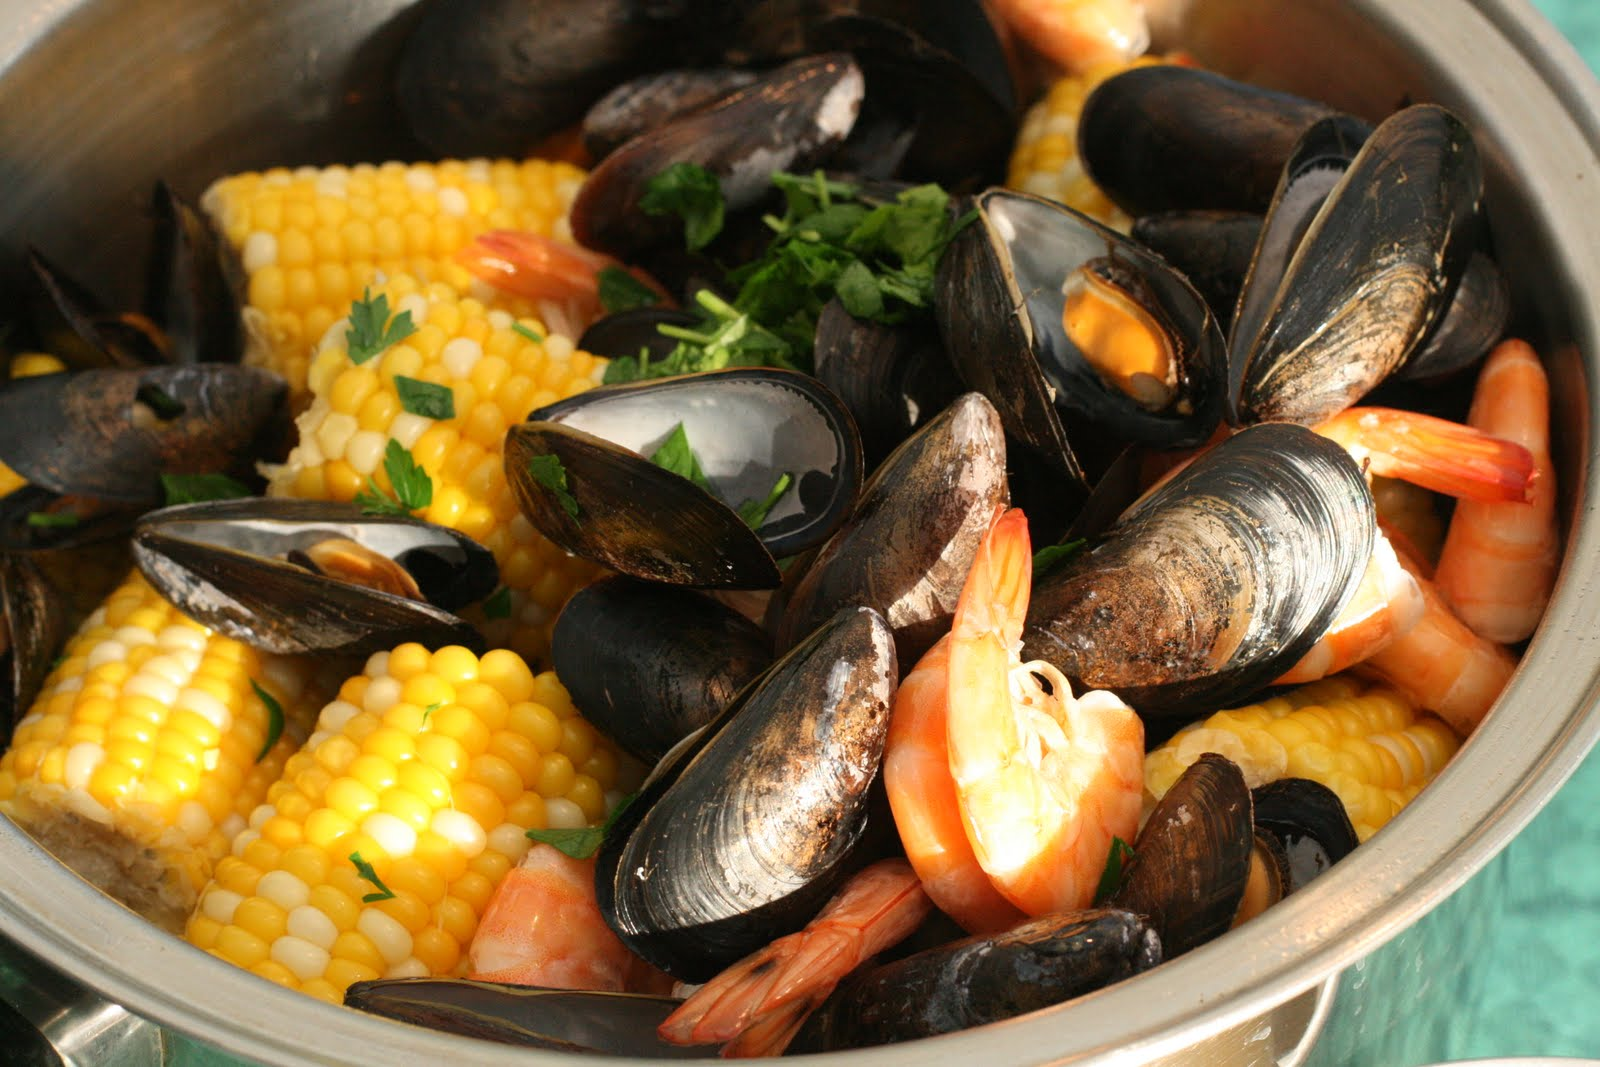 Stovetop Clambake: Getting out of my comfort zone